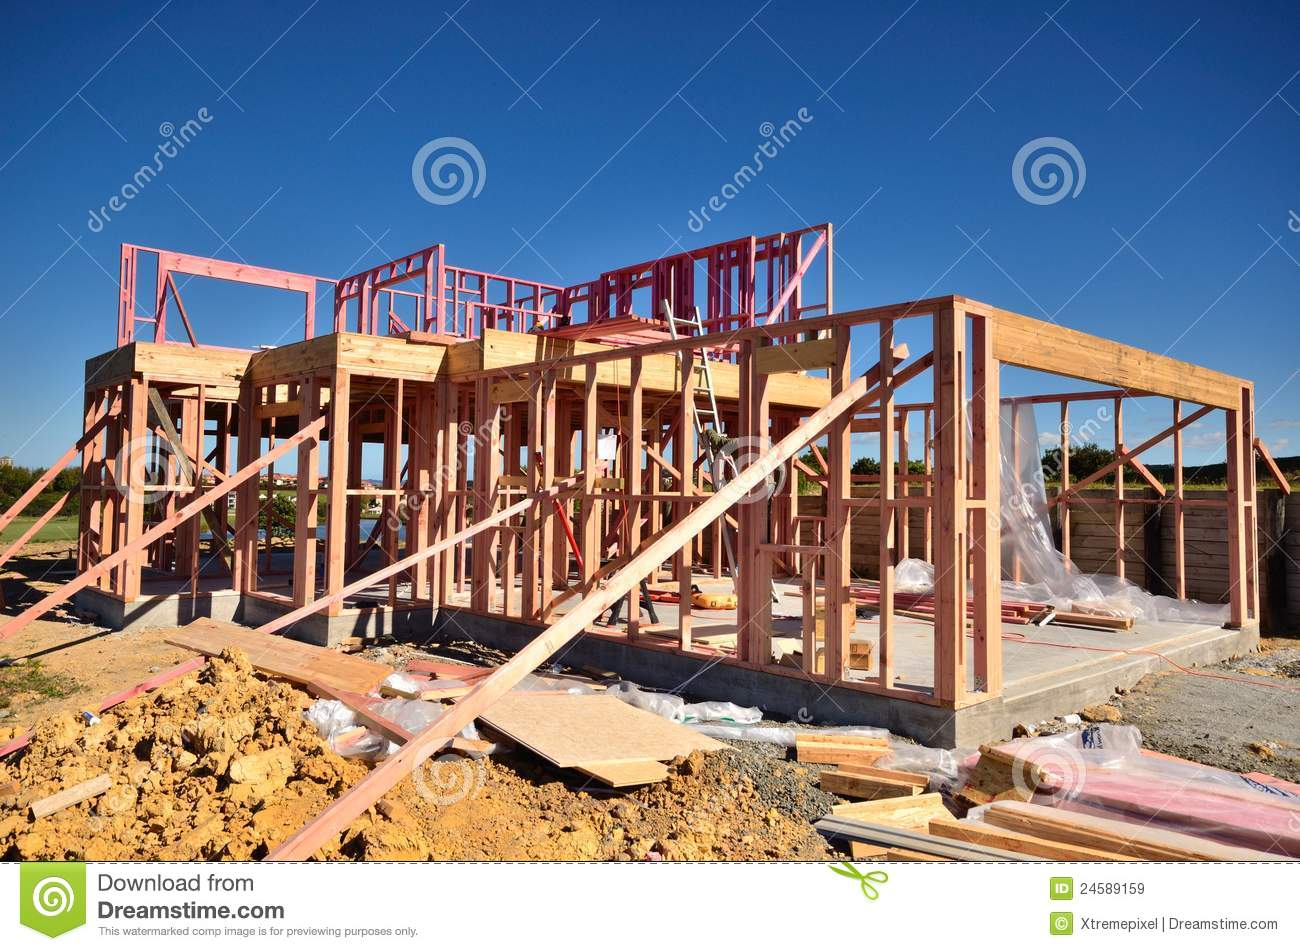 House being built royalty free stock images image 24589159 for Houses that can be built for under 150k